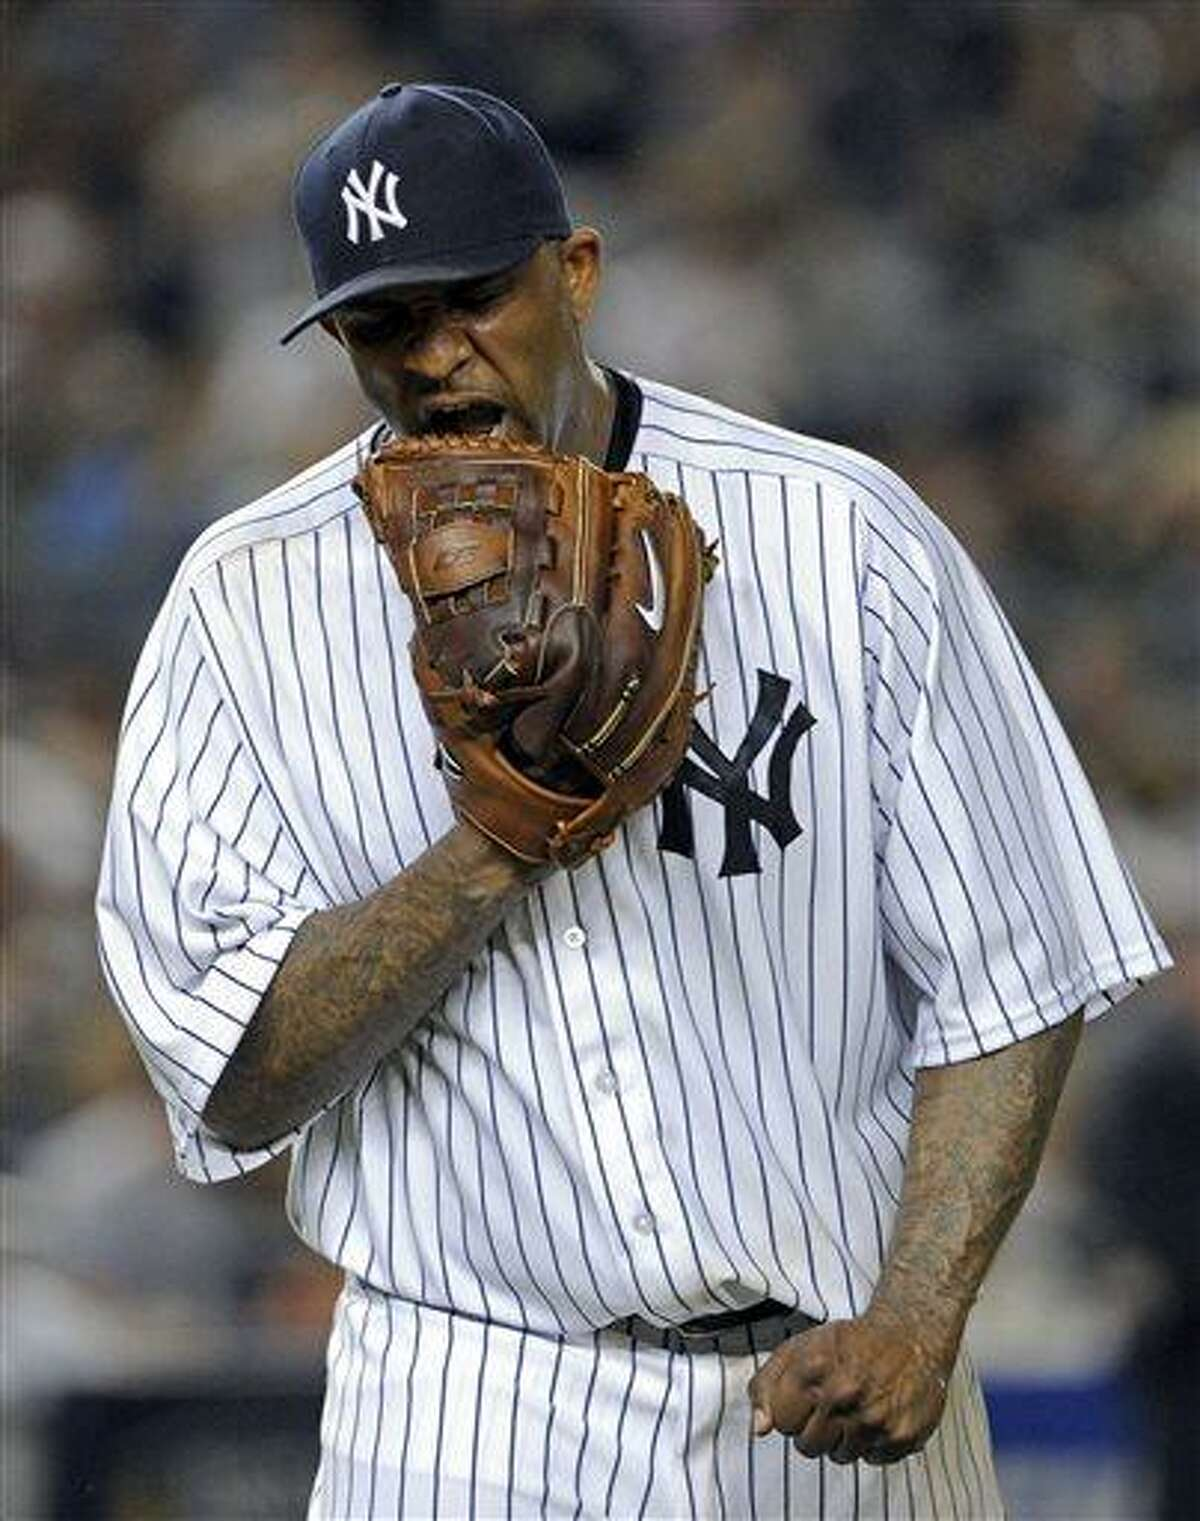 New York Yankees pitcher CC Sabathia leaves the field after allowing a run during the seventh inning of a baseball game against the Boston Red Sox, Friday, May 31, 2013, at Yankee Stadium in New York. (AP Photo/Bill Kostroun)